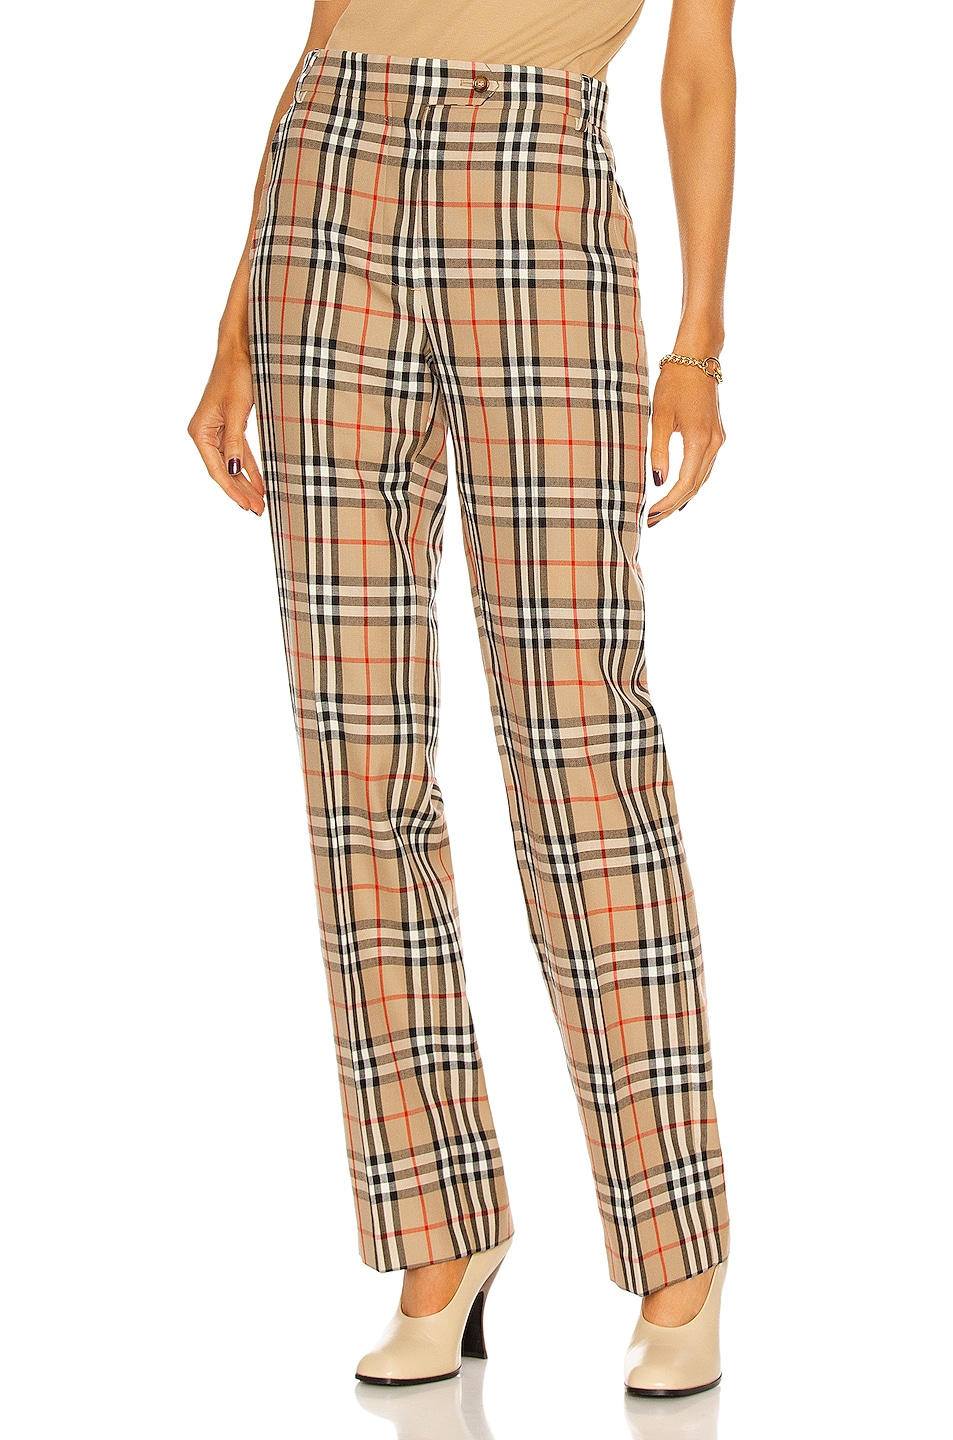 Image 1 of Burberry Fleur Tailored Pant in Archive Beige IP Check